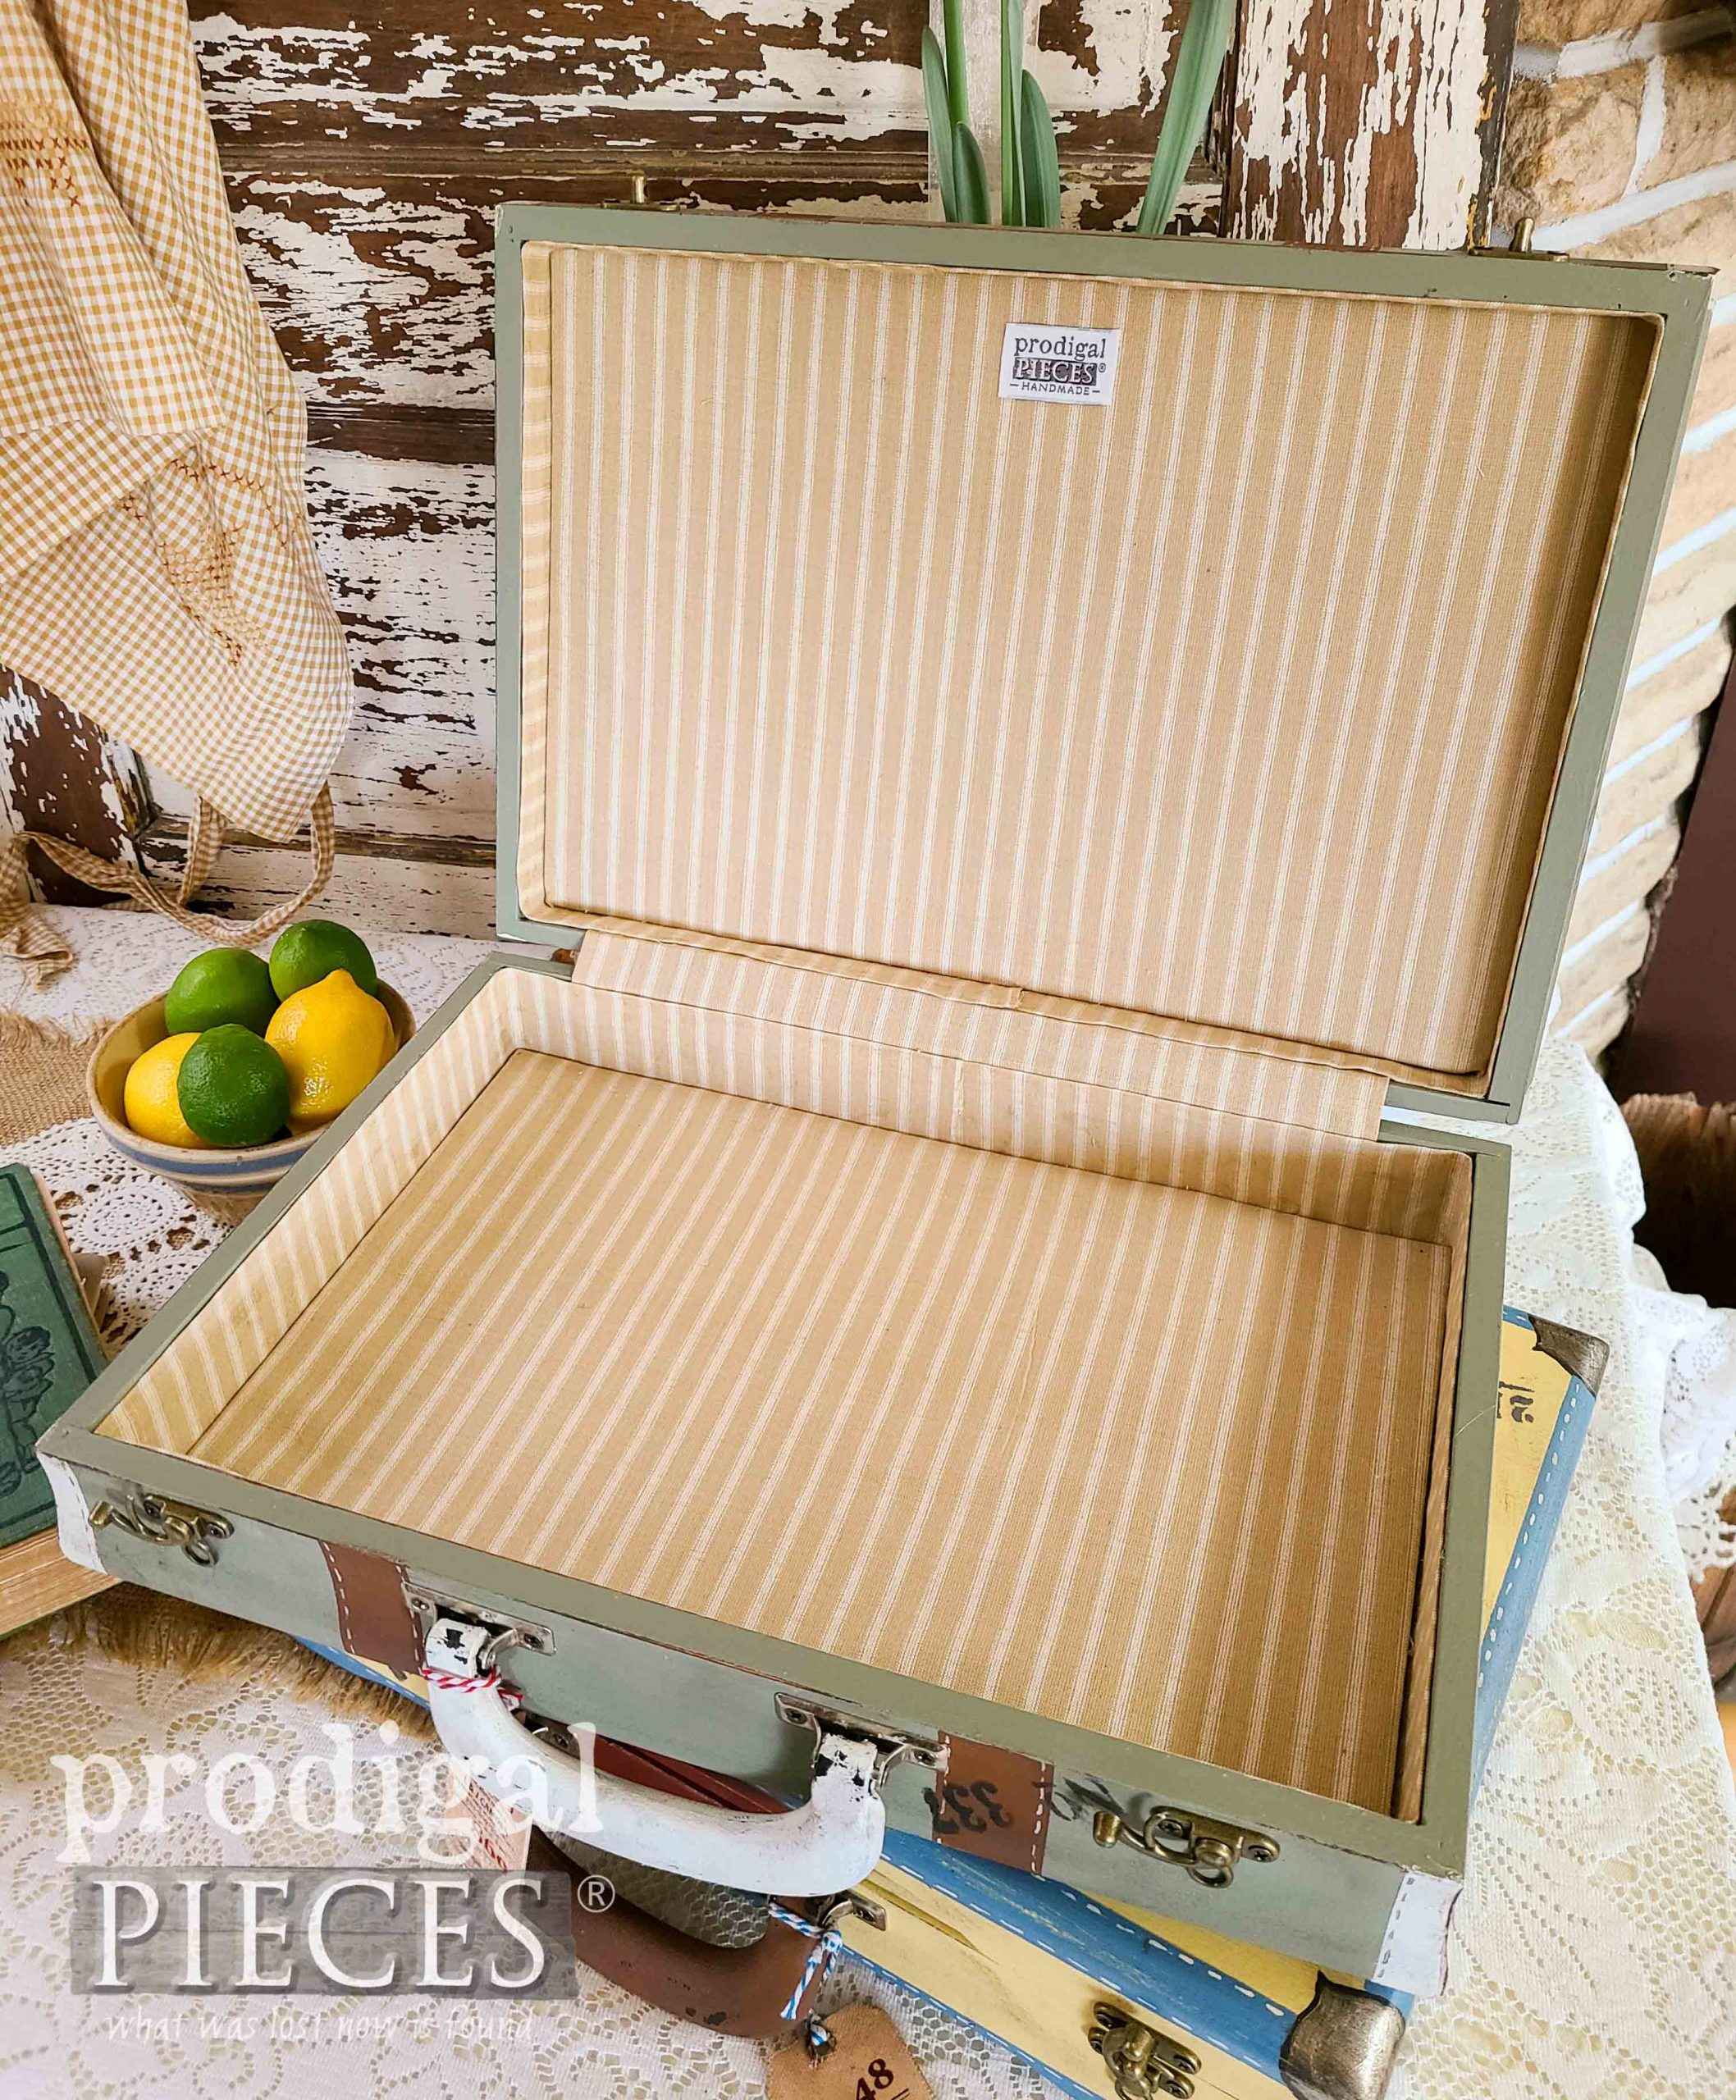 Ticking Lining Inside Green Luggage Box by Larissa of Prodigal Pieces | prodigalpieces.com #prodigalpieces #diy #home #vintage #homedecor